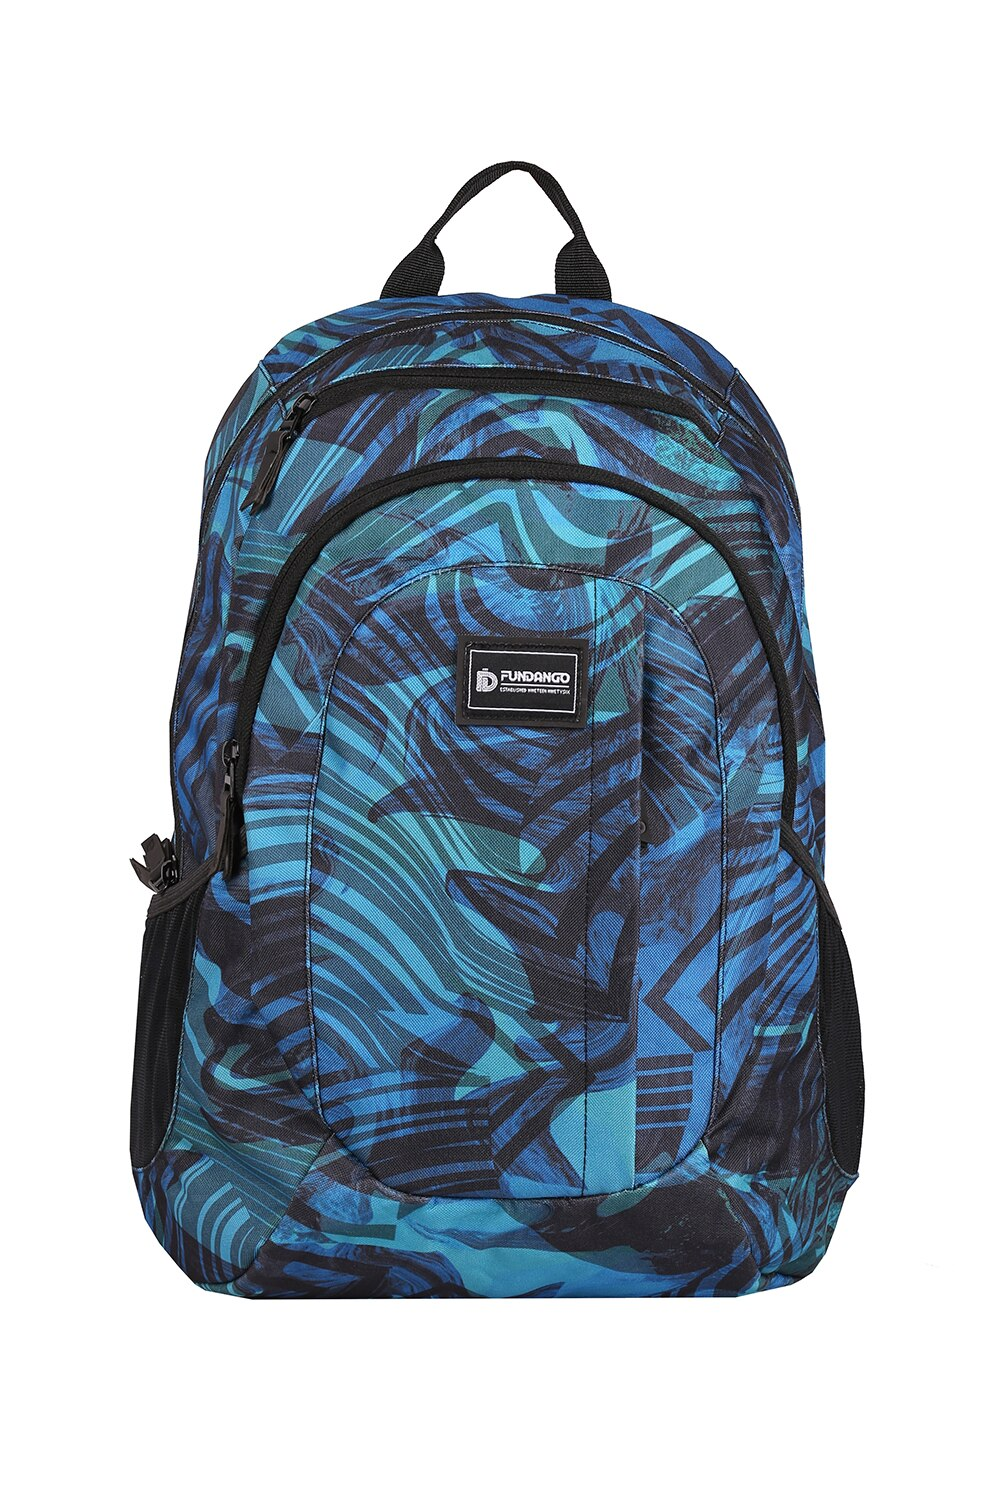 Fotografie Fundango, Rucsac unisex cu imprimeu abstract Urban, Multicolora